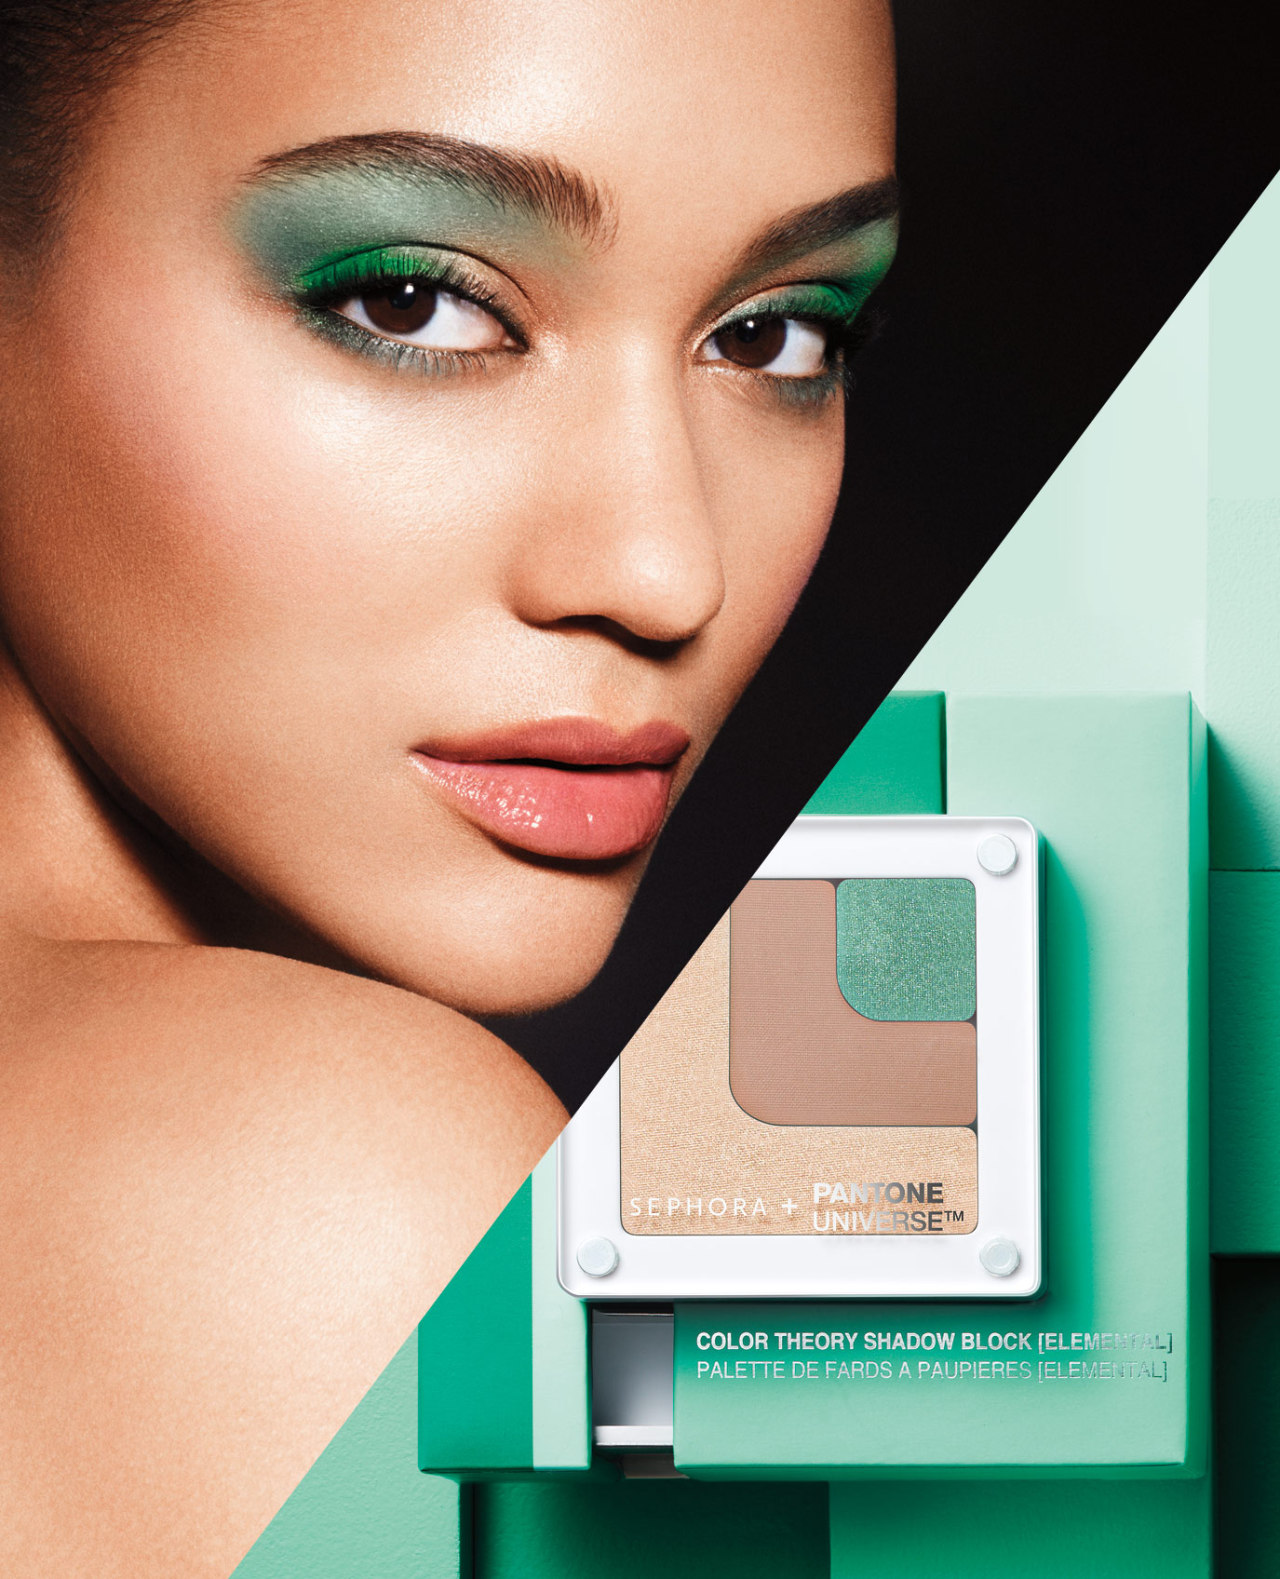 "SEPHORA HOT NOW: VOLUME 3 SEPHORA + PANTONE UNIVERSE COLOR GRID SHADOW BLOCK IN ELEMENTAL Sephora Head Merchant Margarita Arriagada on the power of wet/dry eyeshadow. SEPHORA + PANTONE UNIVERSE COLOR GRID SHADOW BLOCK IN ELEMENTAL: ""There are products out there that are too loose or too gritty, and this one feels angelic. It's a perfect shimmer for the lid. What's amazing is you can use it wet as a liner, just for a pop of color. Neutrals are hotter than ever, so this is a great way to help clients experiment."" SHOP COLOR THEORY SHADOW BLOCK AT SEPHORA ▸ MORE ON MARGARITA AND THE PANTONE COLOR OF THE YEAR ▸ FIND OUT ABOUT THE OTHER PRODUCTS IN OUR EMERALD SEPHORA HOT NOW ▸"